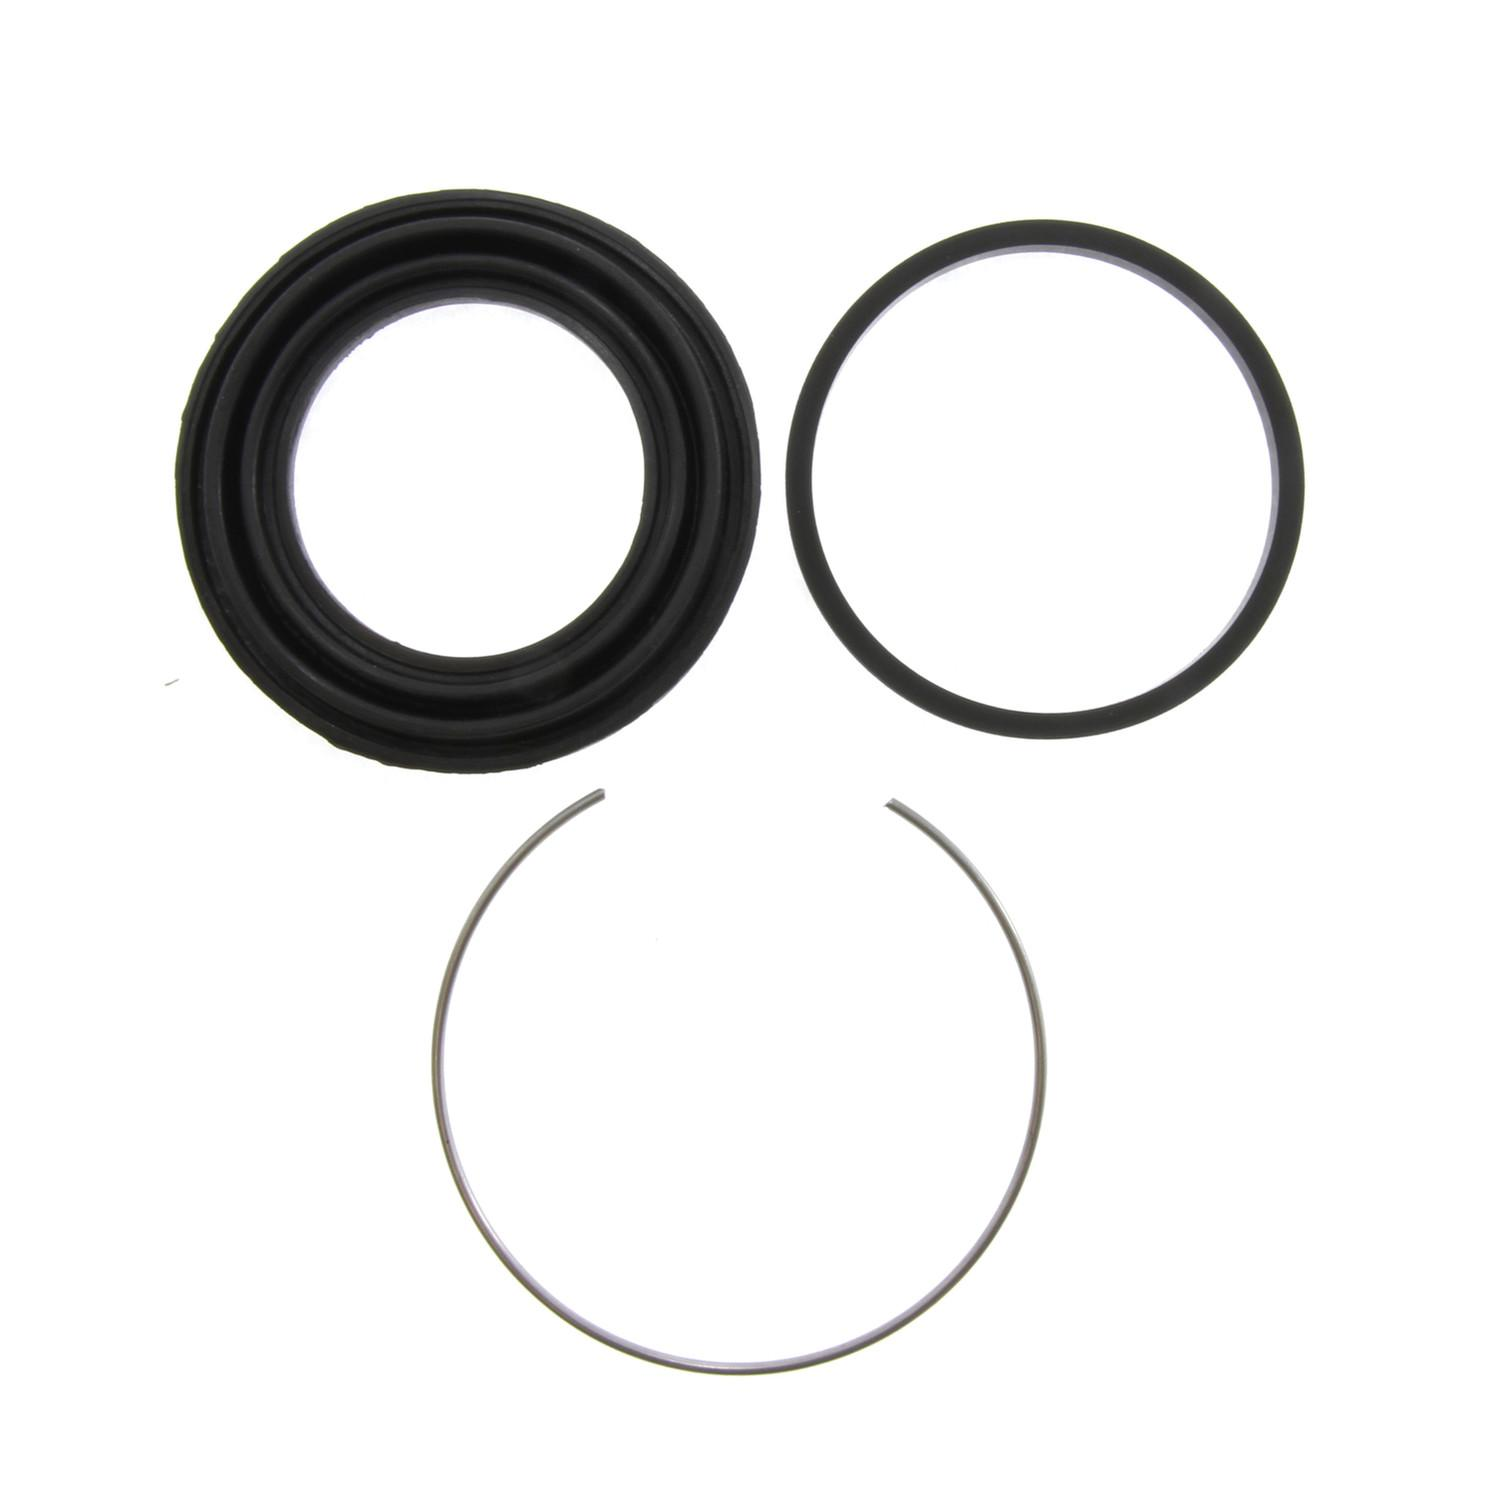 CENTRIC PARTS - Brake Caliper Repair Kit (Front) - CEC 143.45007